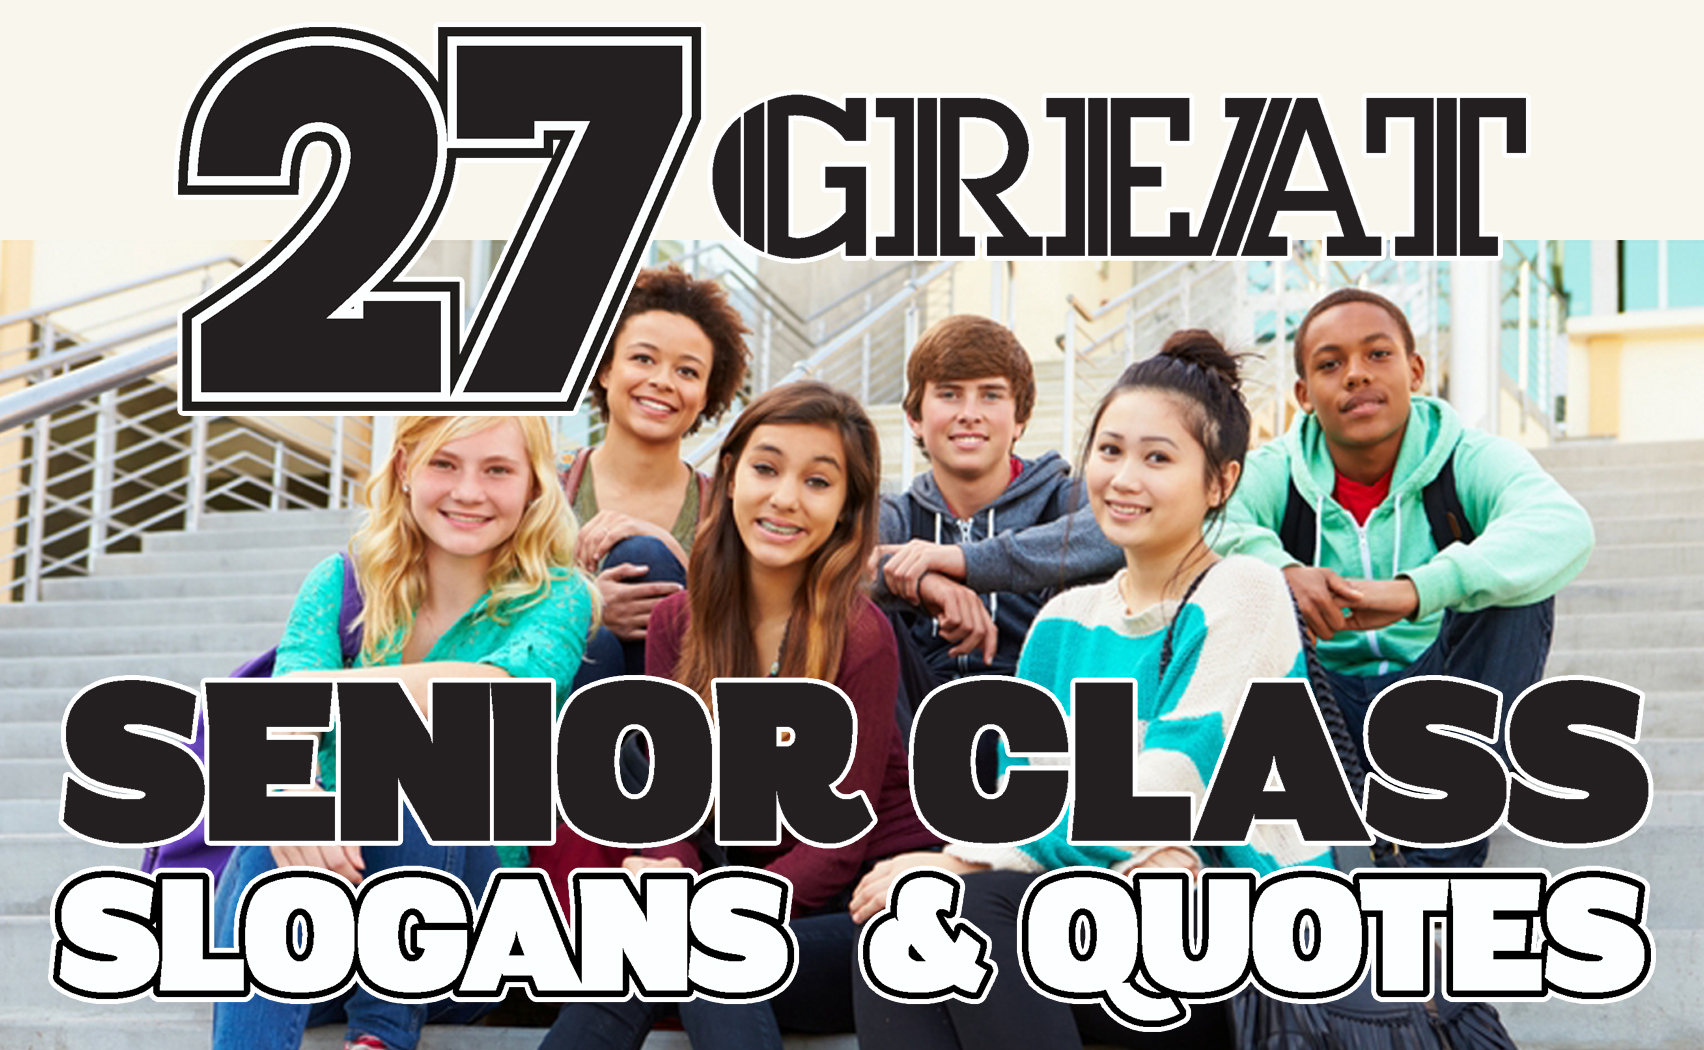 27 Great 2018 Senior Class Slogans and Quotes